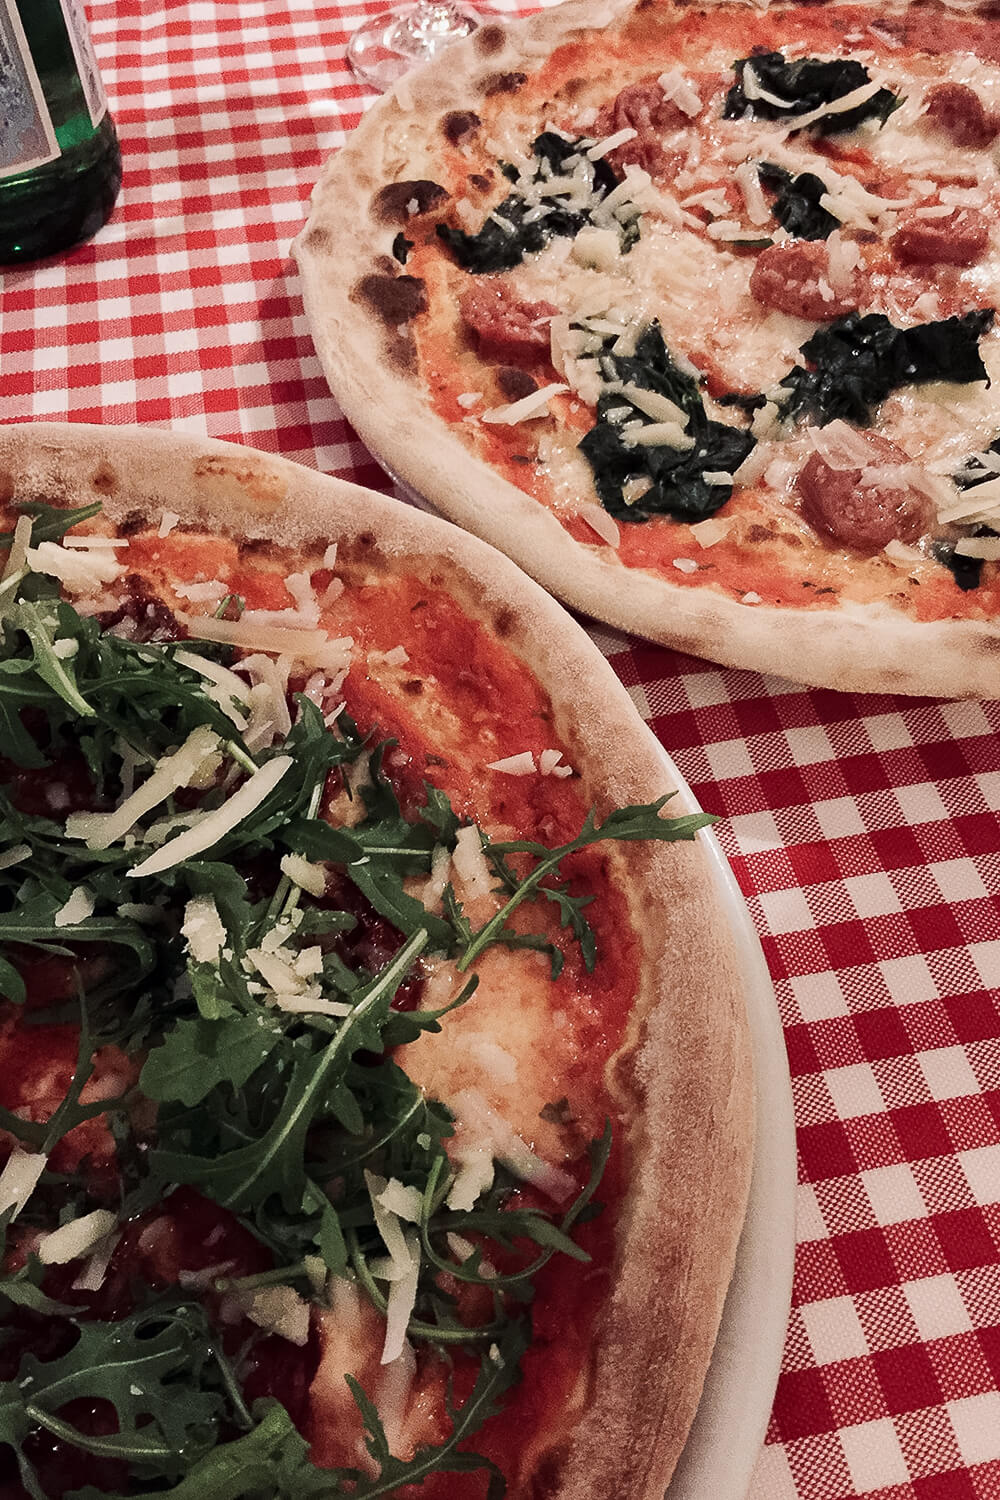 Italienische Pizza im Corallo in Berlin-Wedding